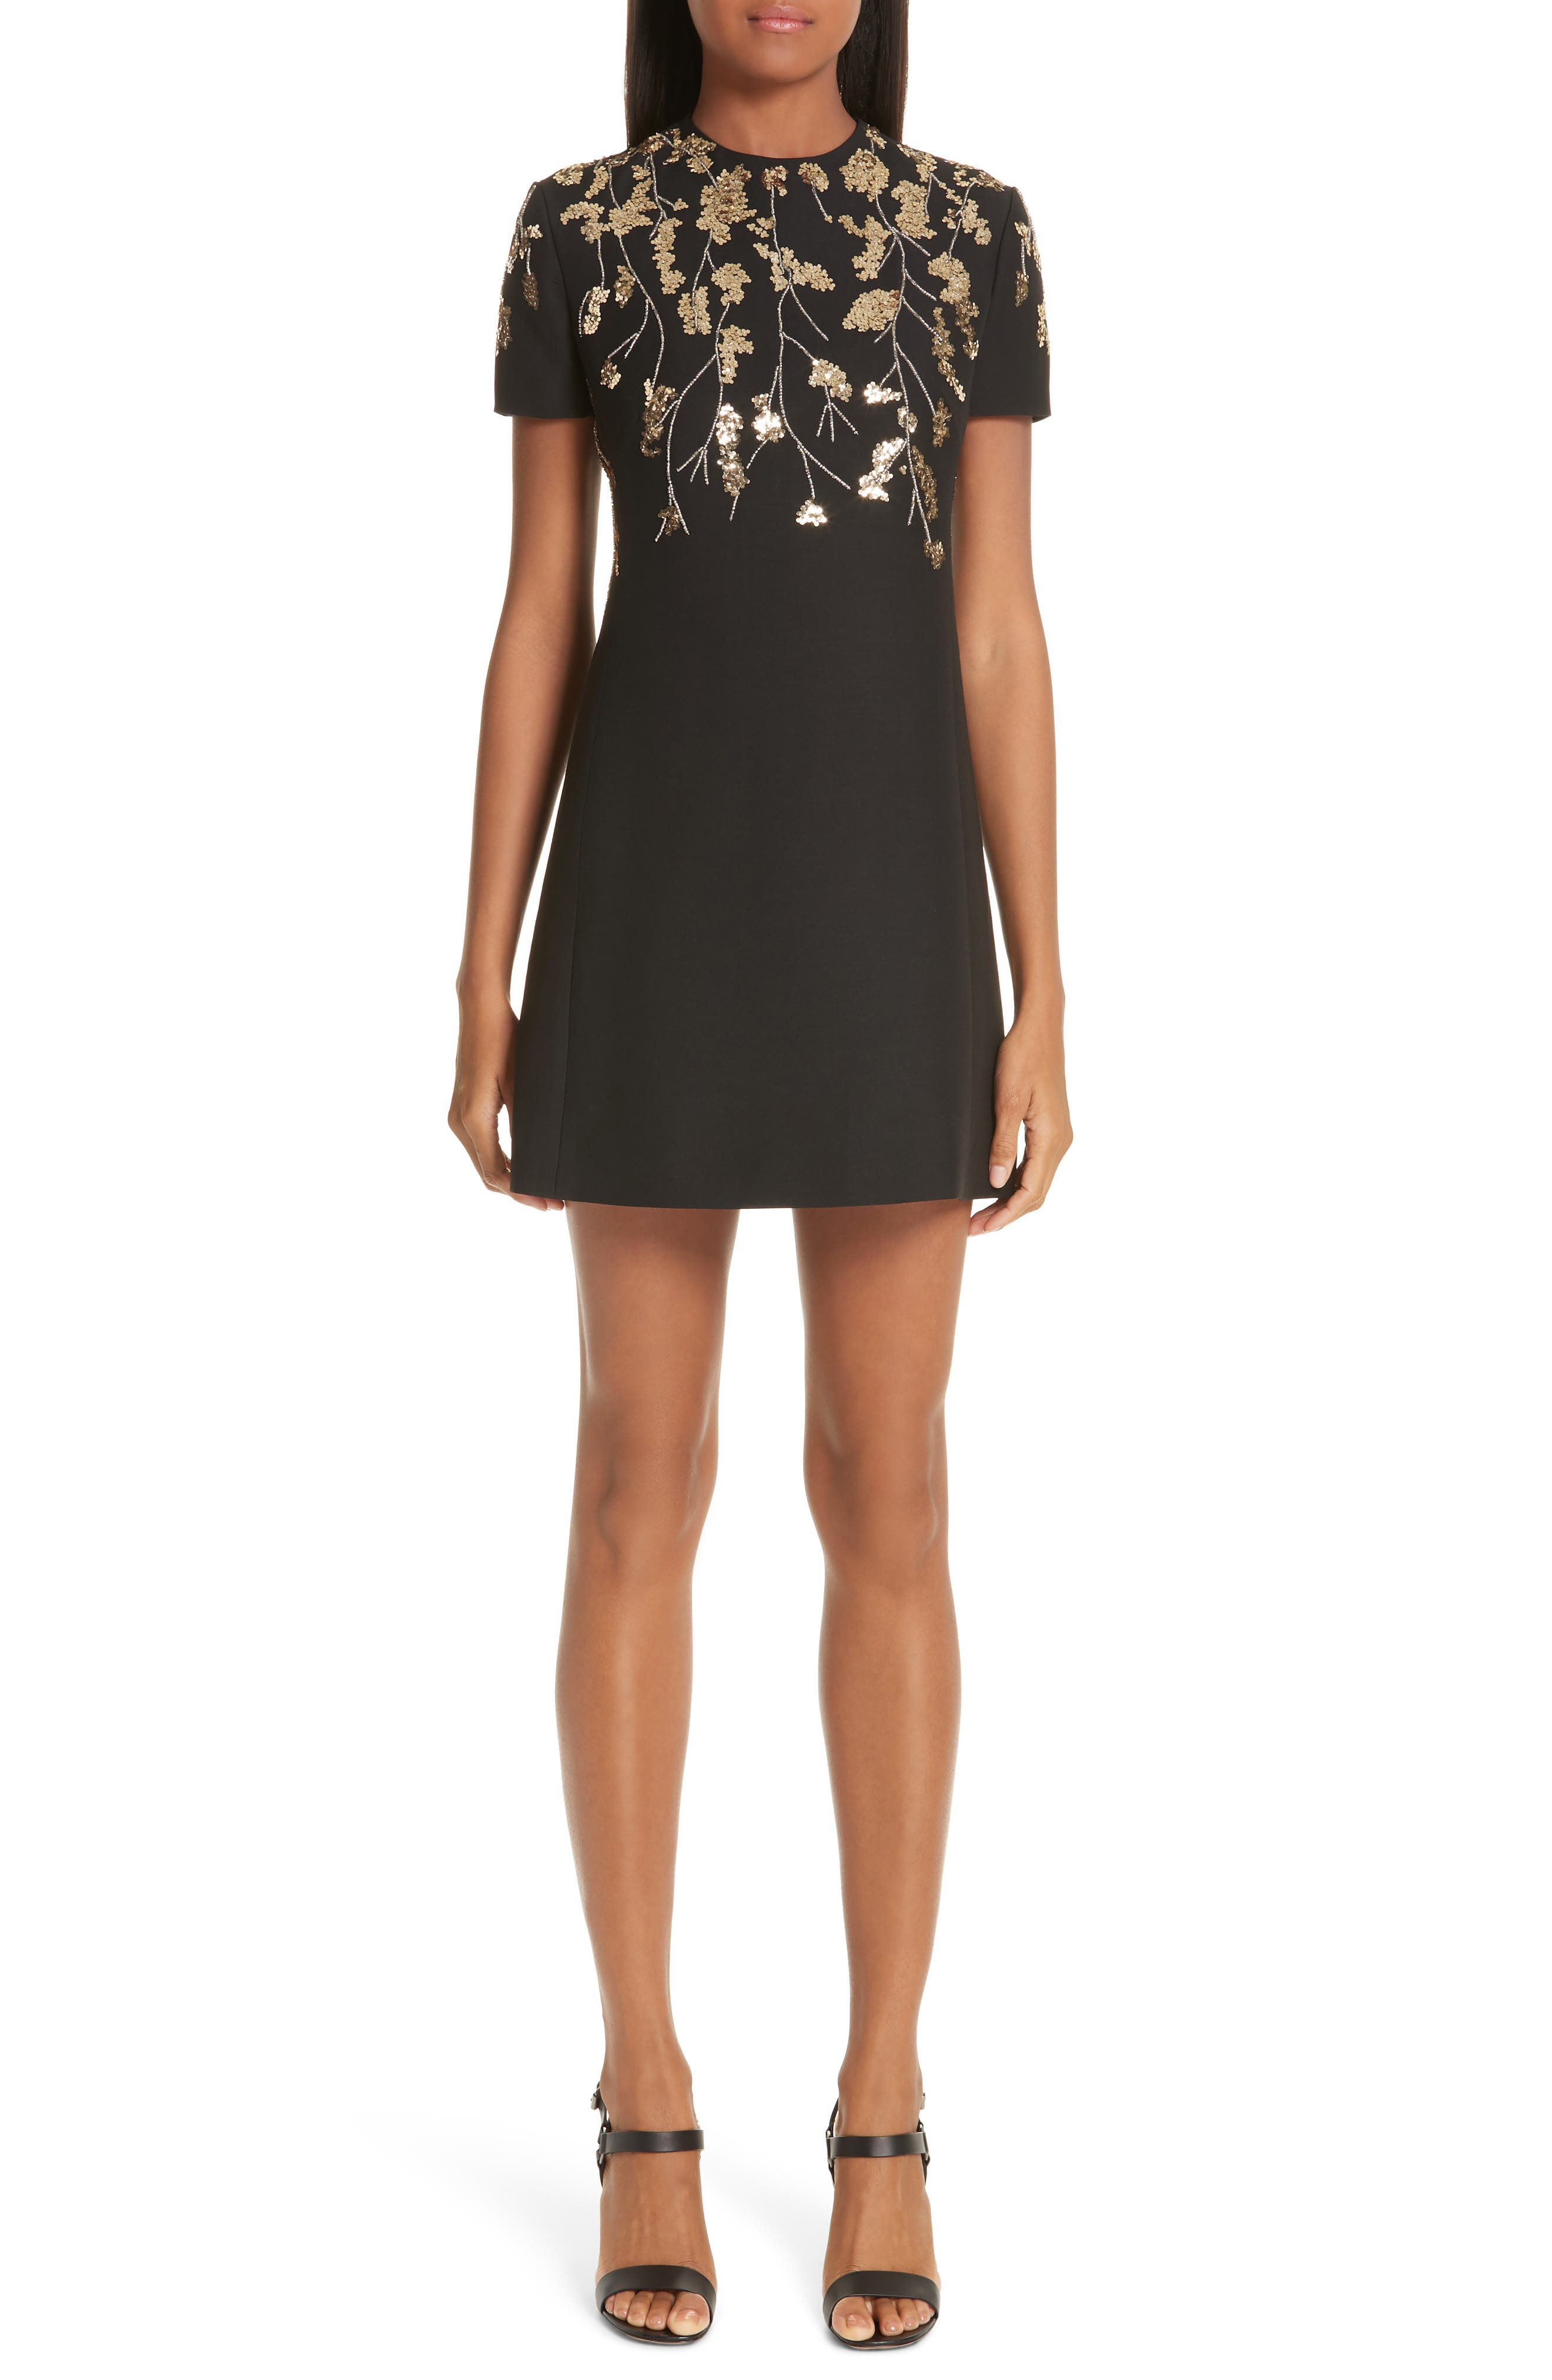 VALENTINO, Floral Embroidered Crepe Couture Dress, Main thumbnail 1, color, BLACK GOLD